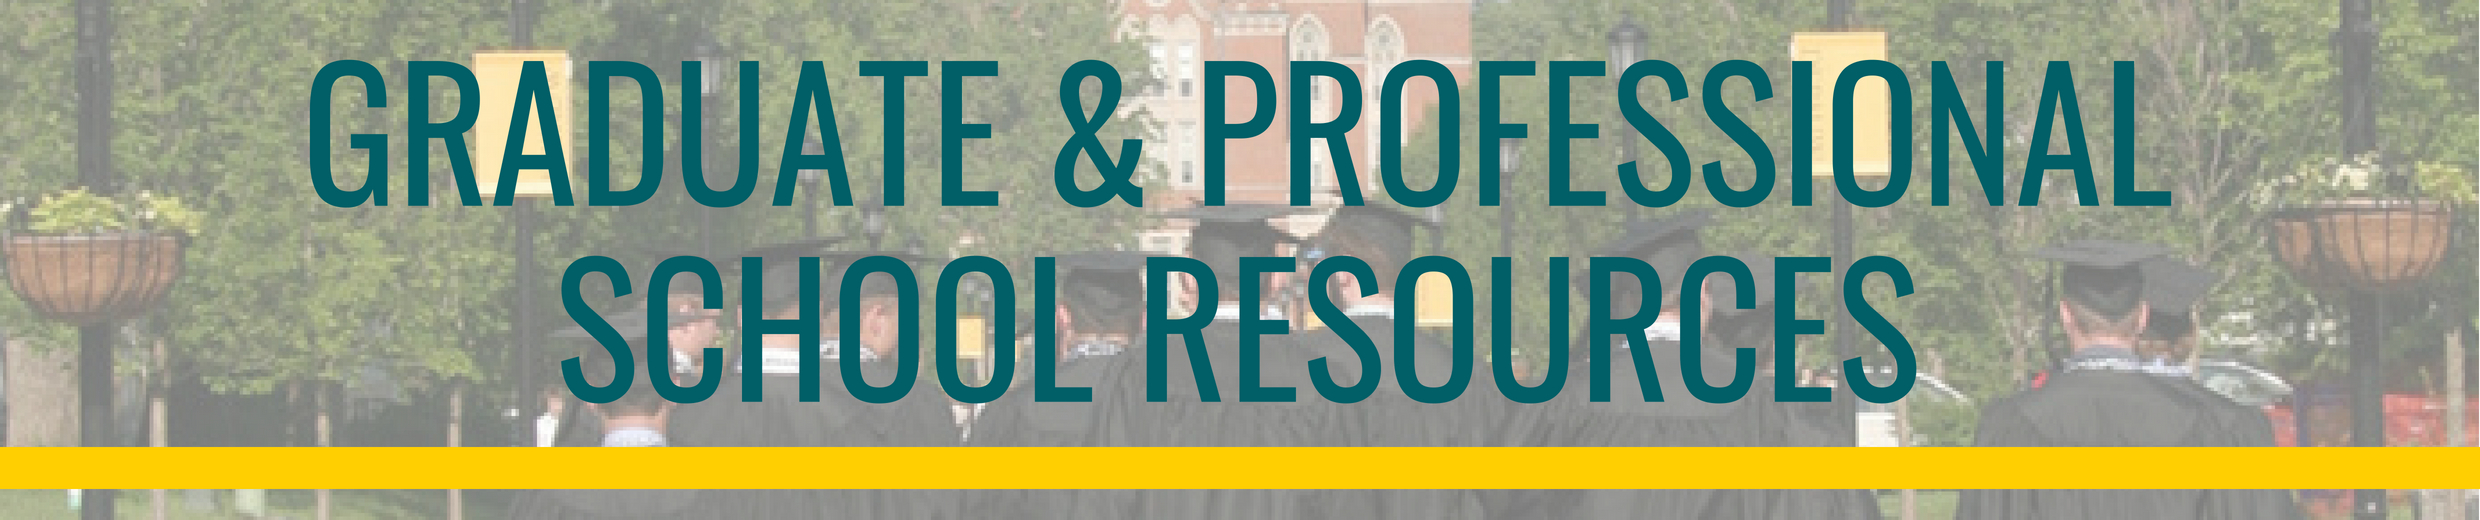 Graduate and Professional School Resources